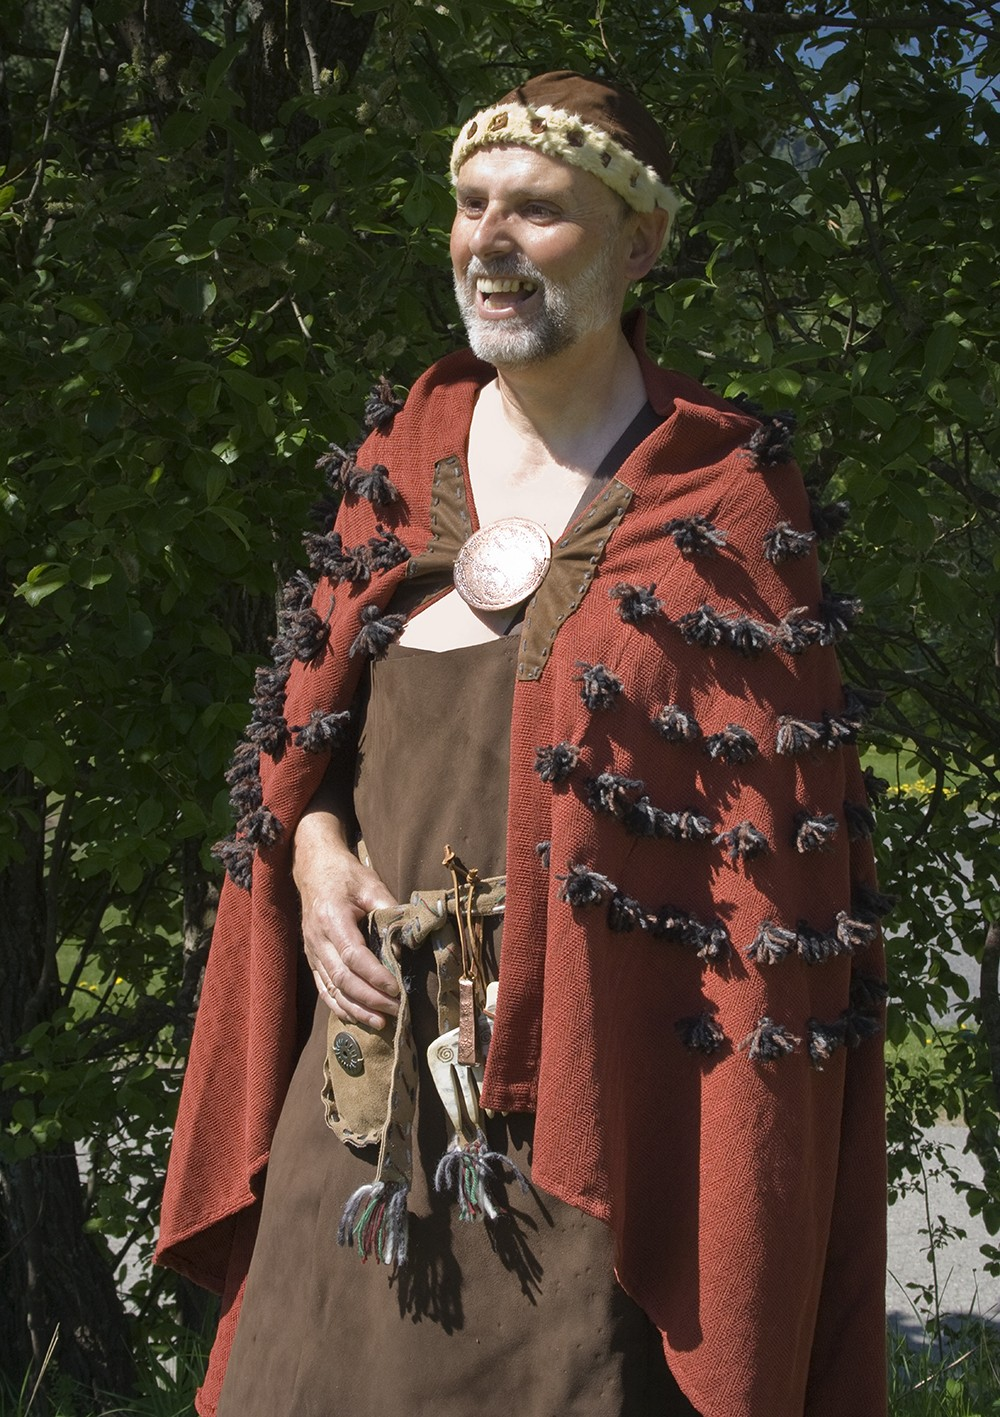 A man in a Bronze Age costume with a red furry cape and hat